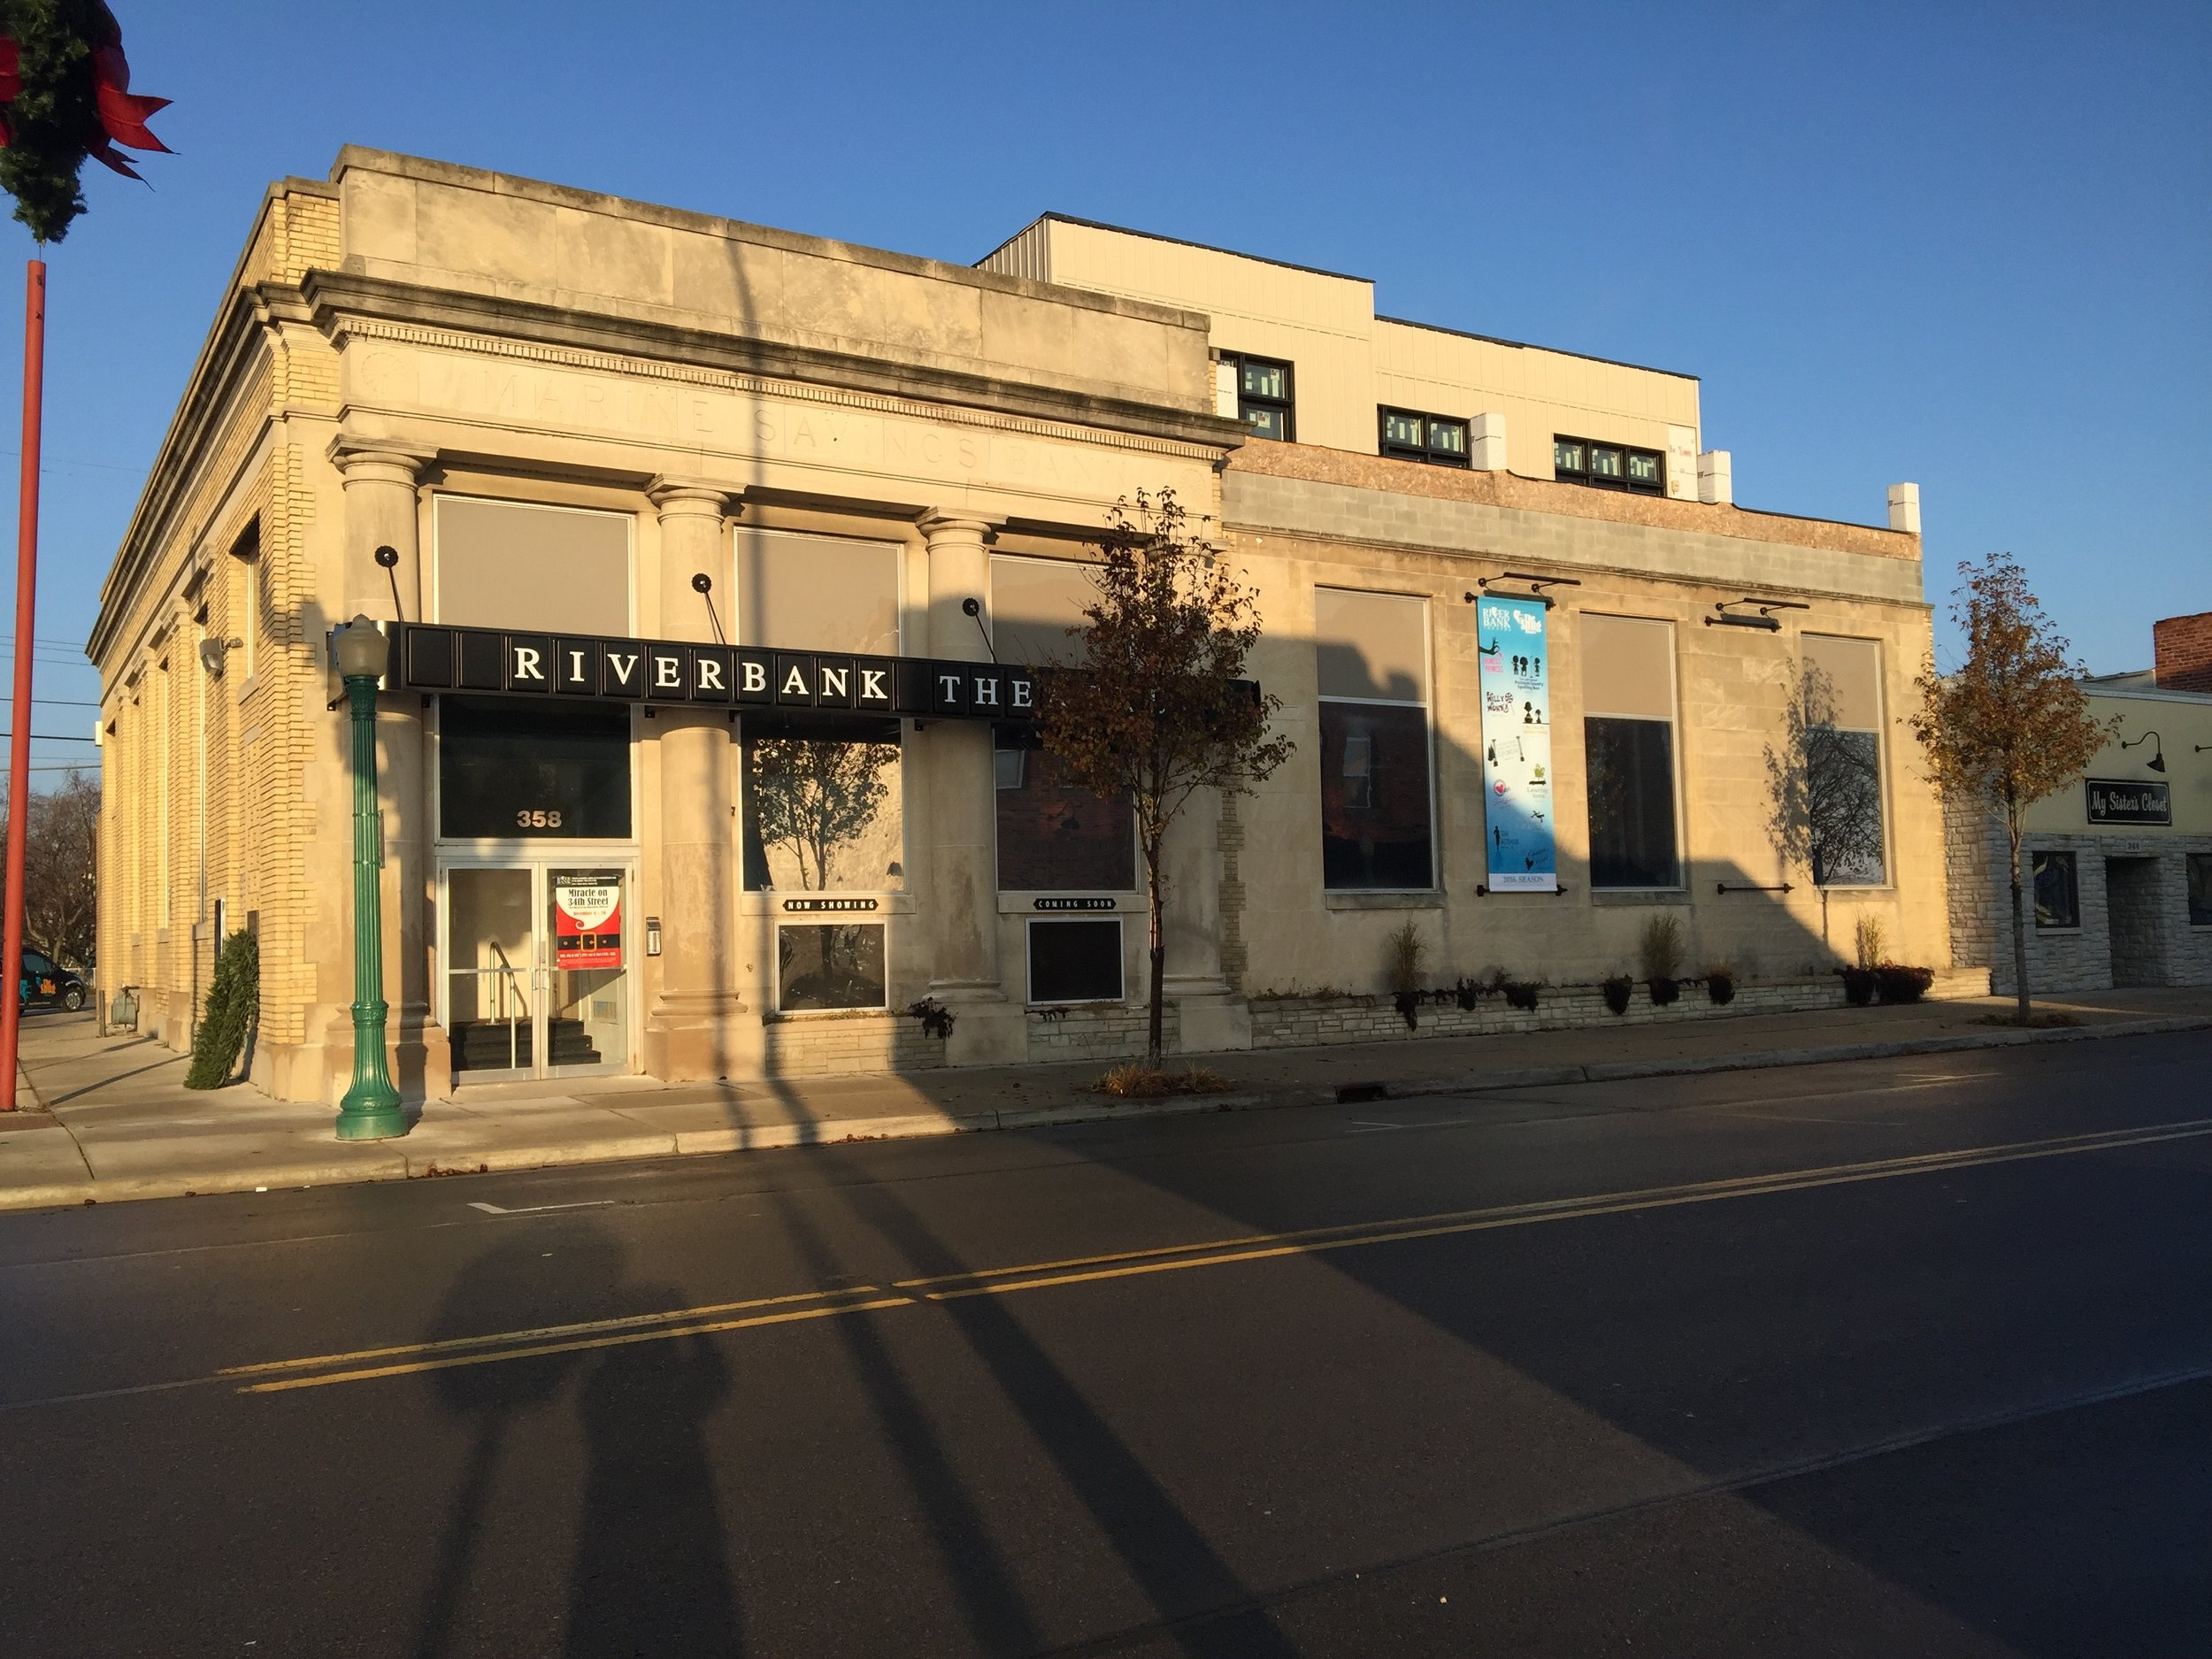 Riverbank Theatre, 358 S. Water St.